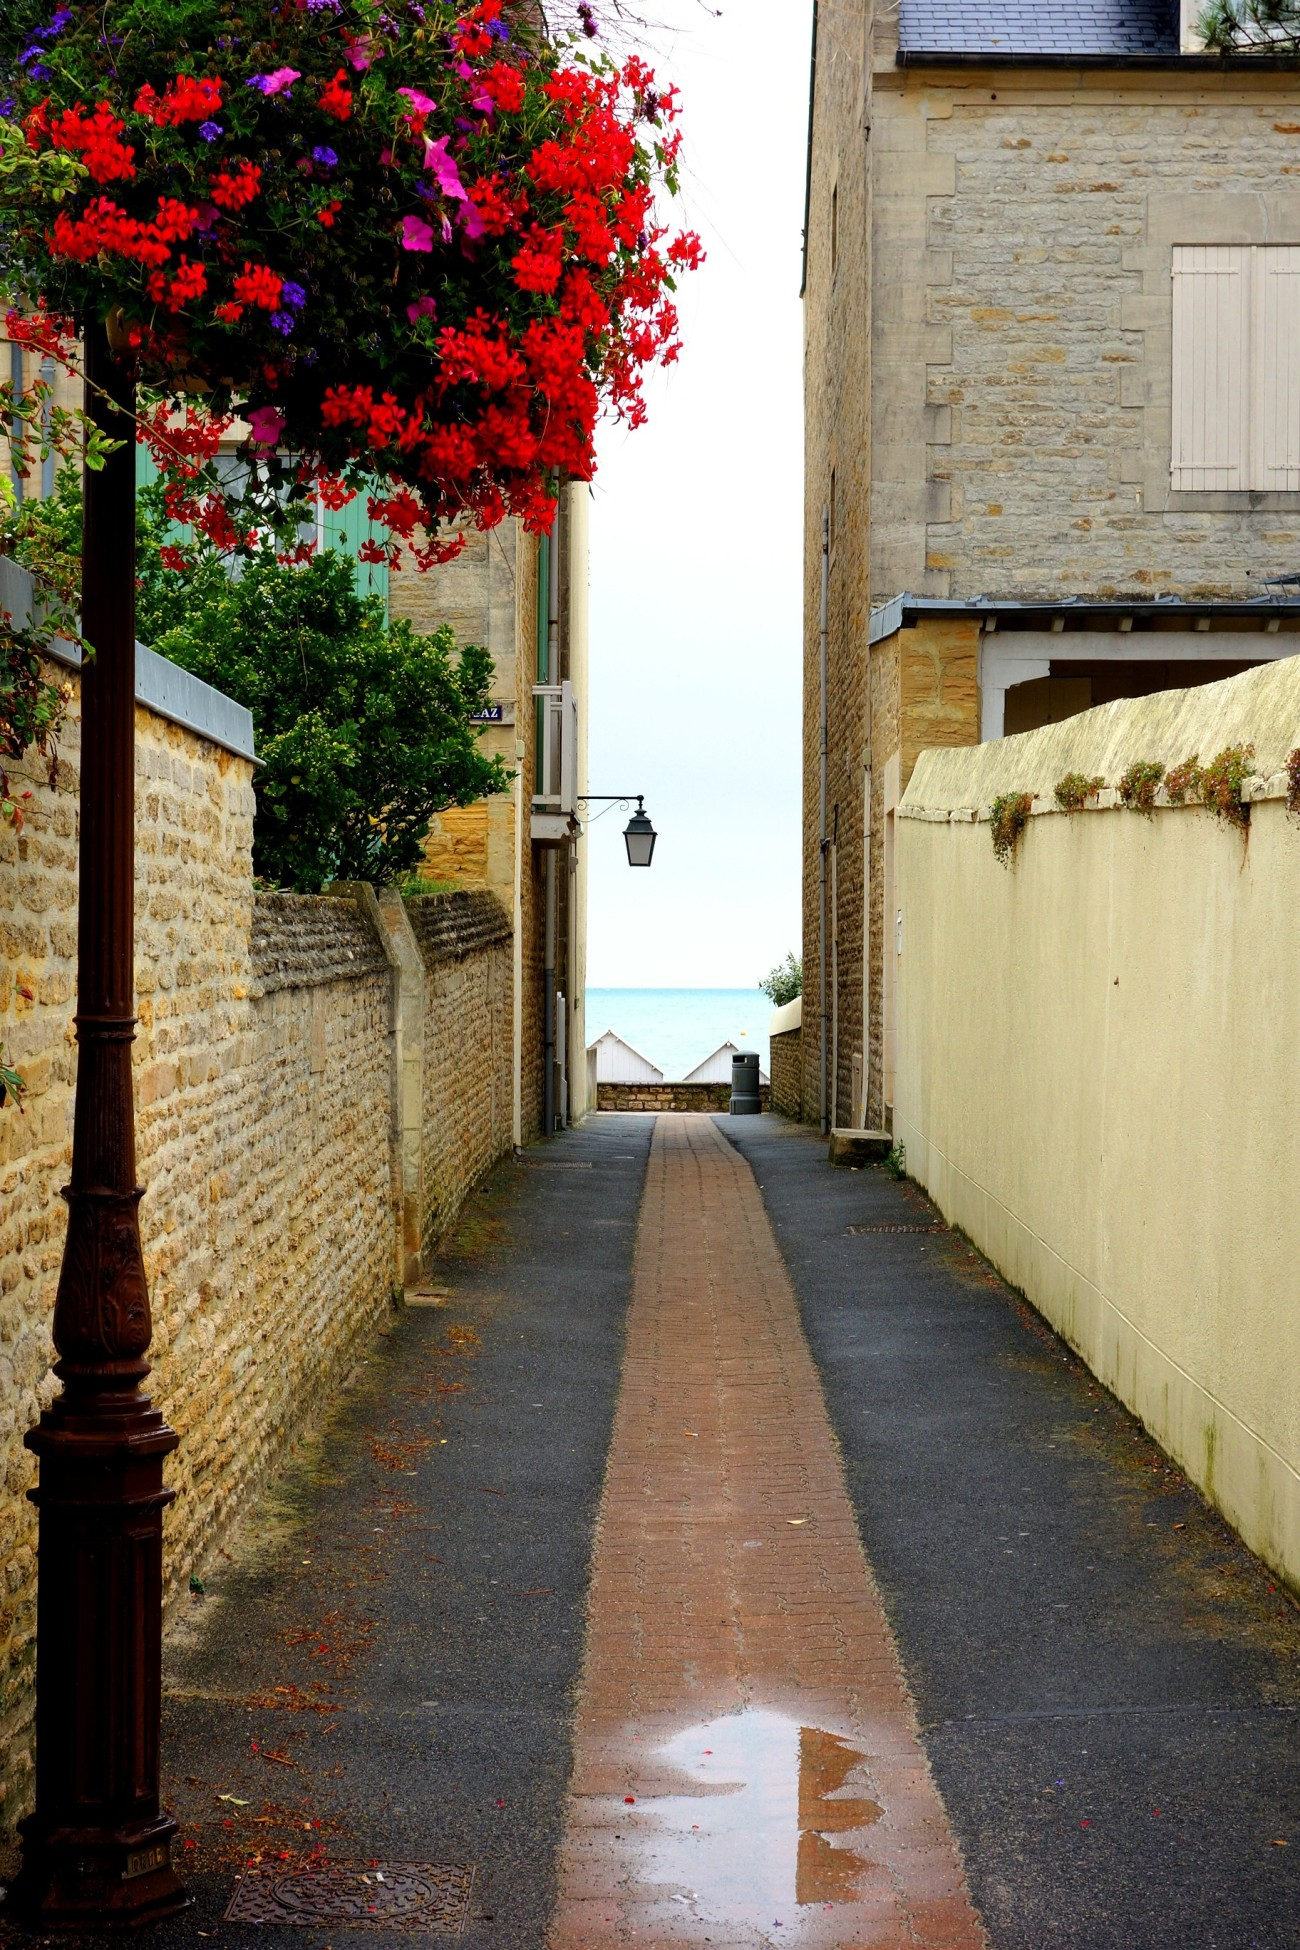 Street to the Juno beach, St Aubin sur Mer, Normandy